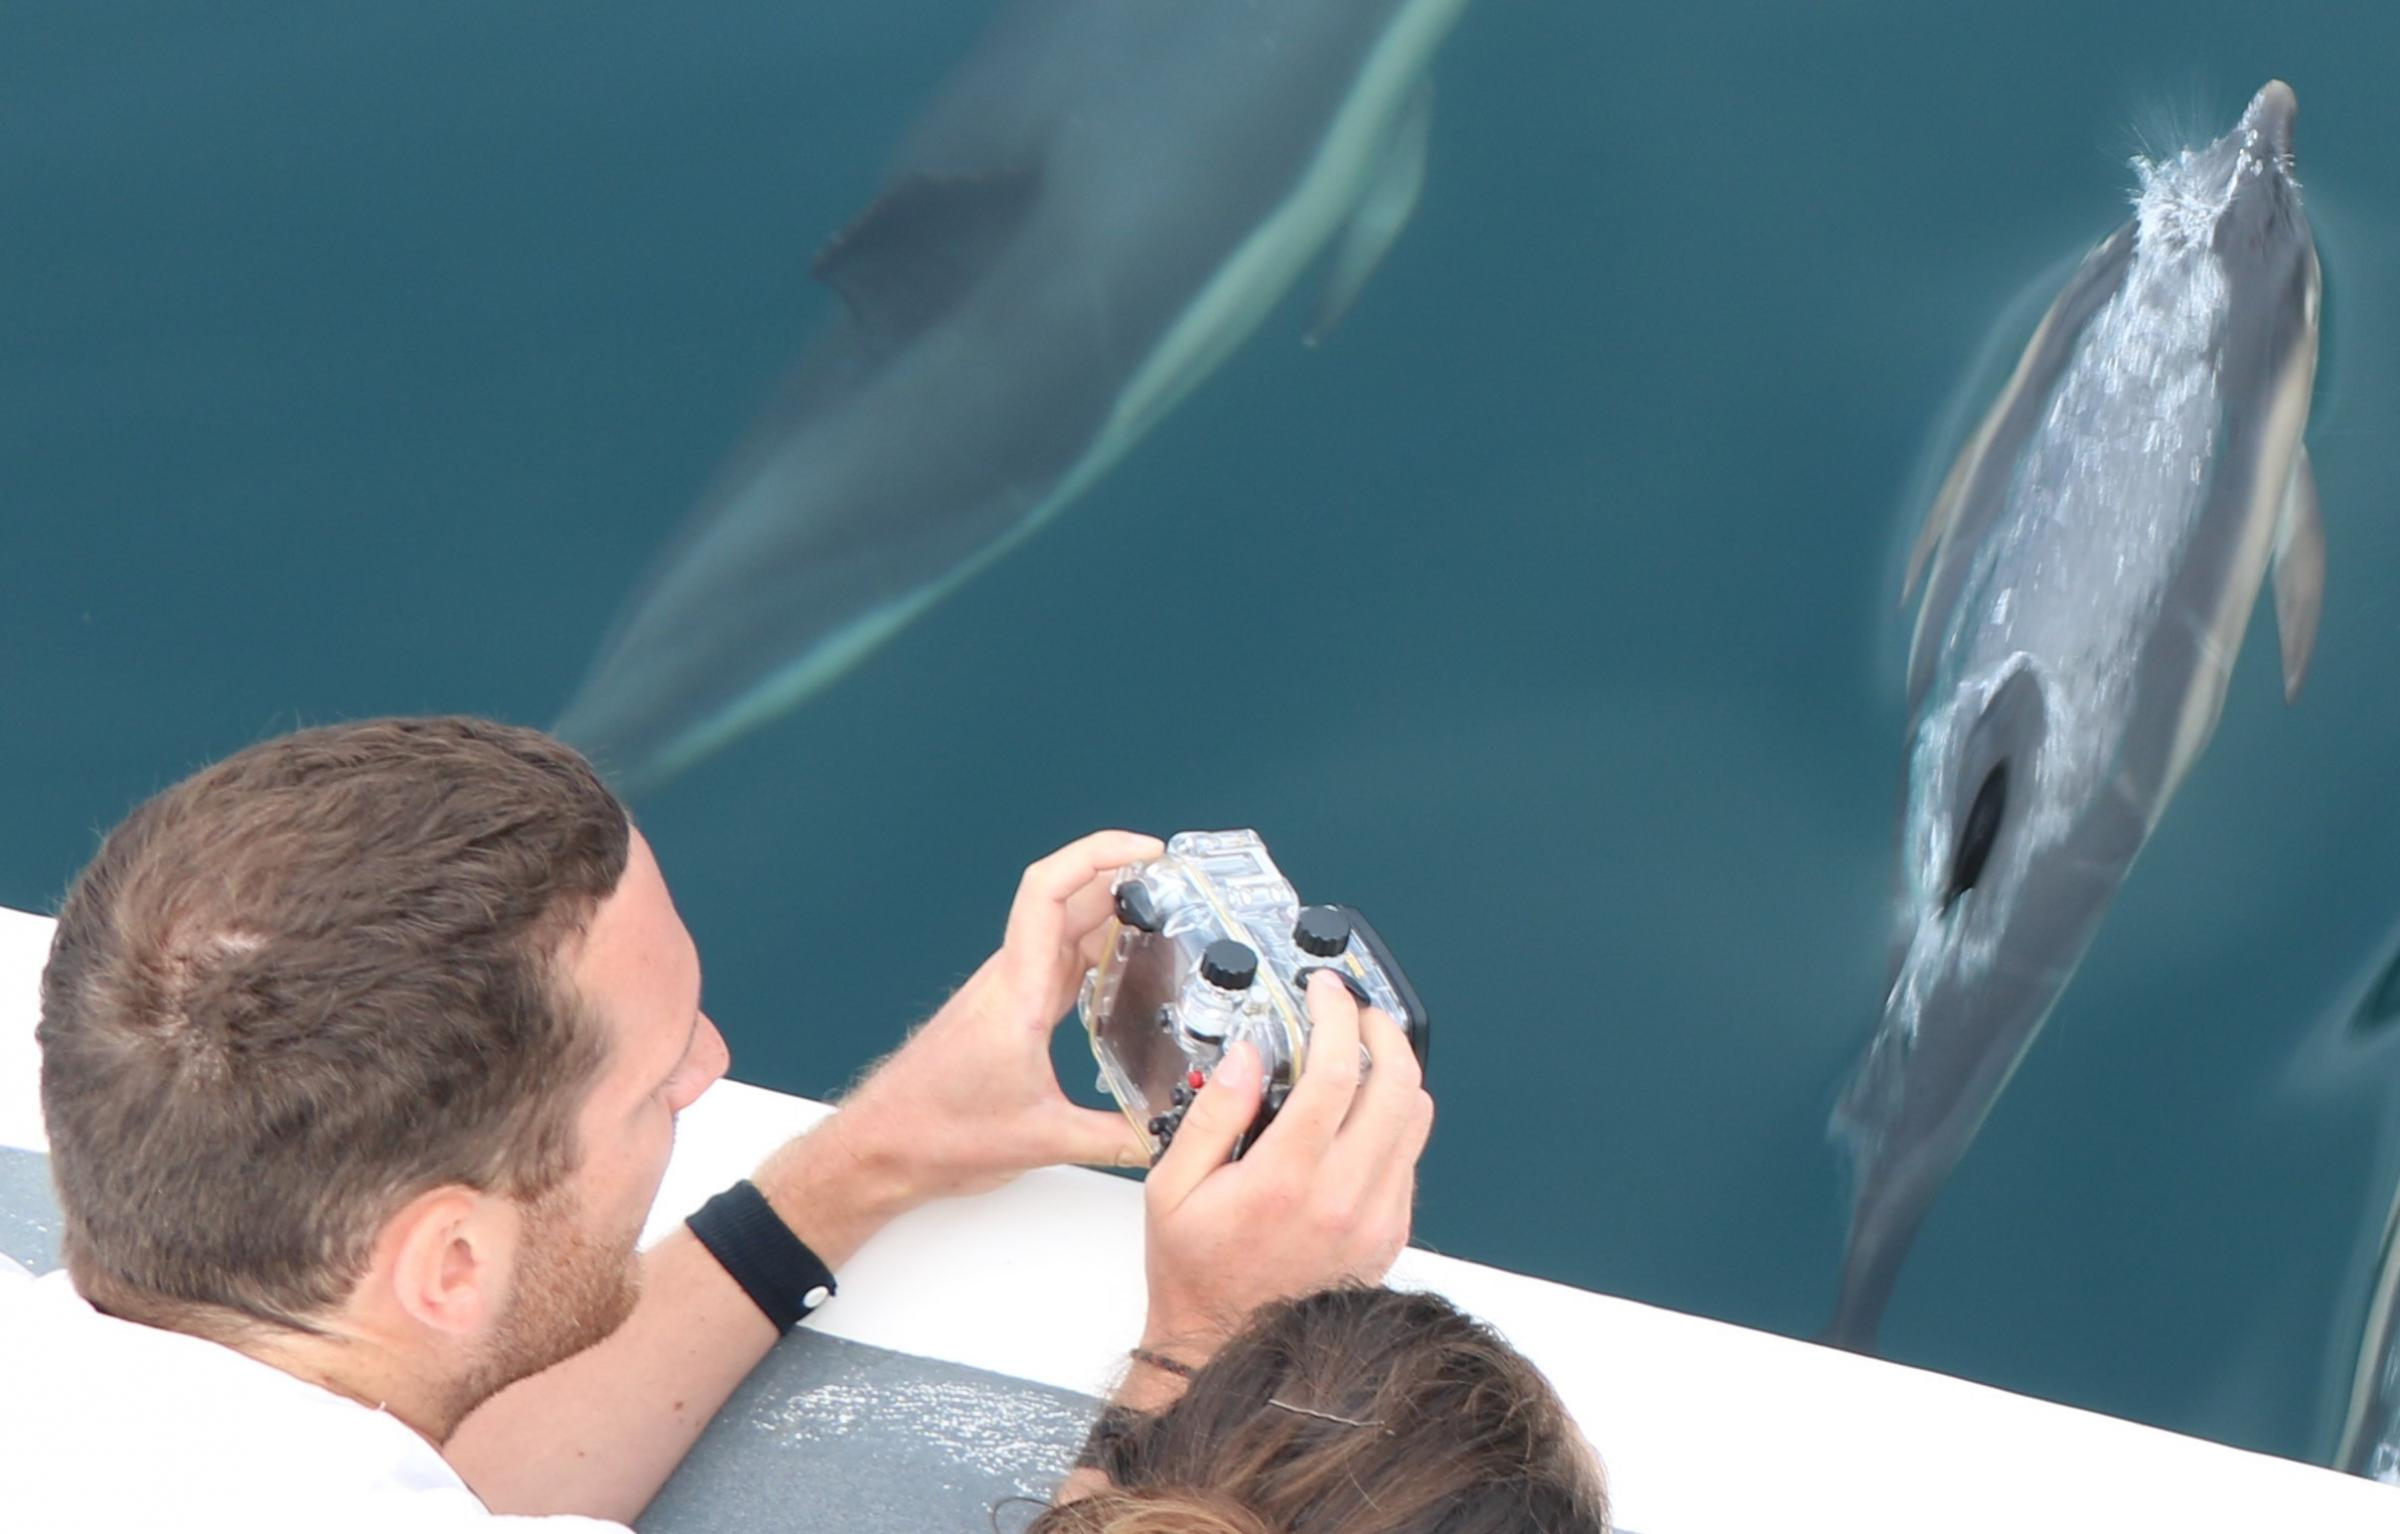 Dorset residents urged to protect whales, dolphins and porpoises with citizen science